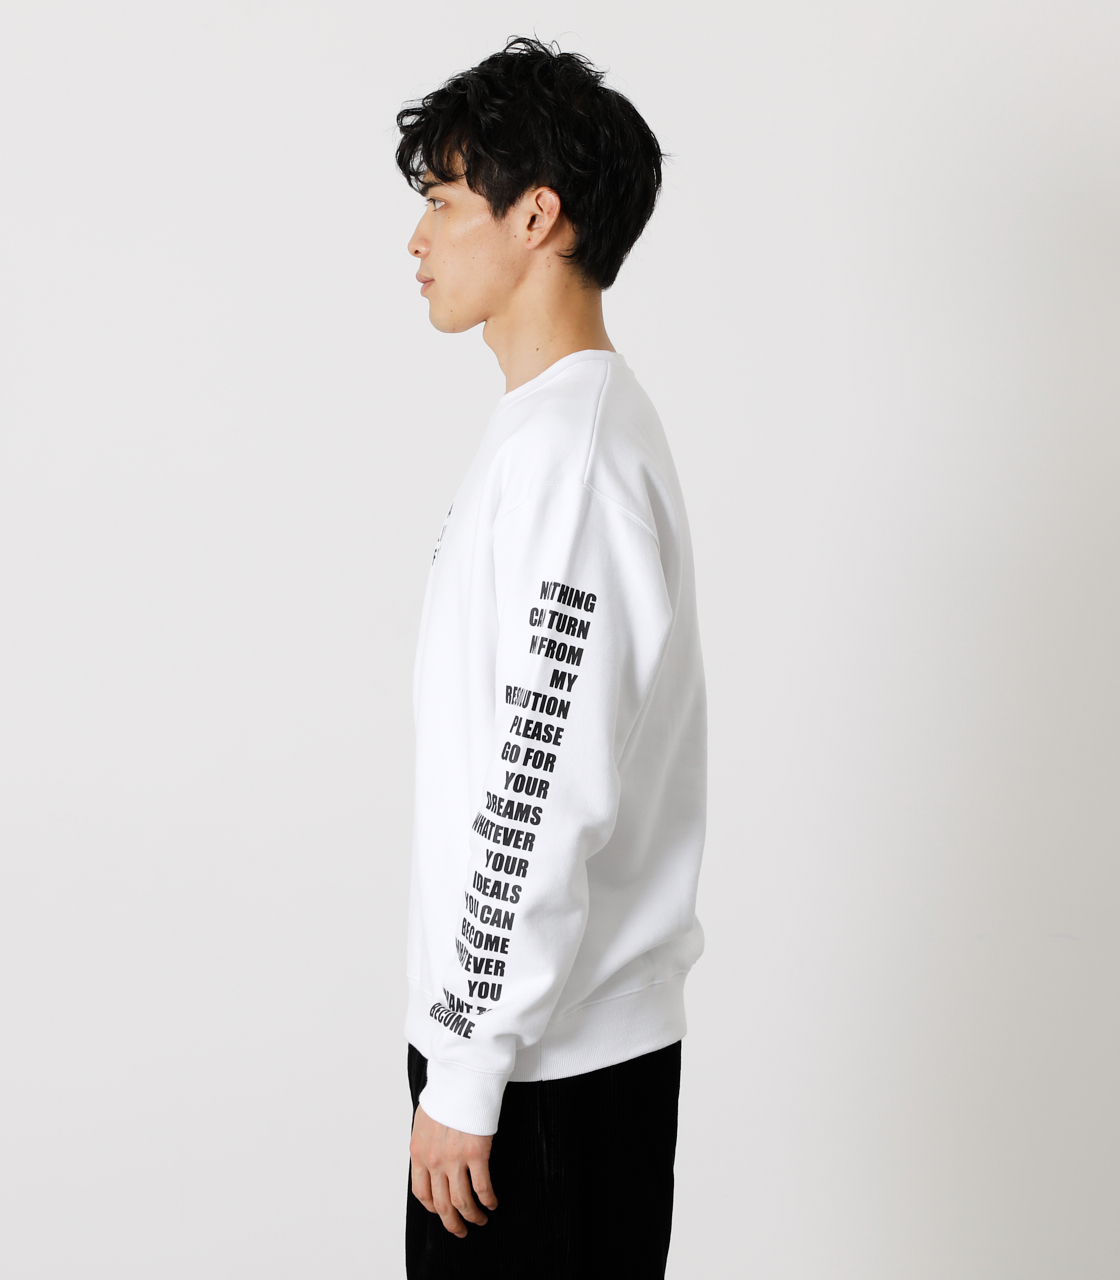 ONE ARM MESSAGE PULLOVER/ワンアームメッセージプルオーバー 詳細画像 WHT 6